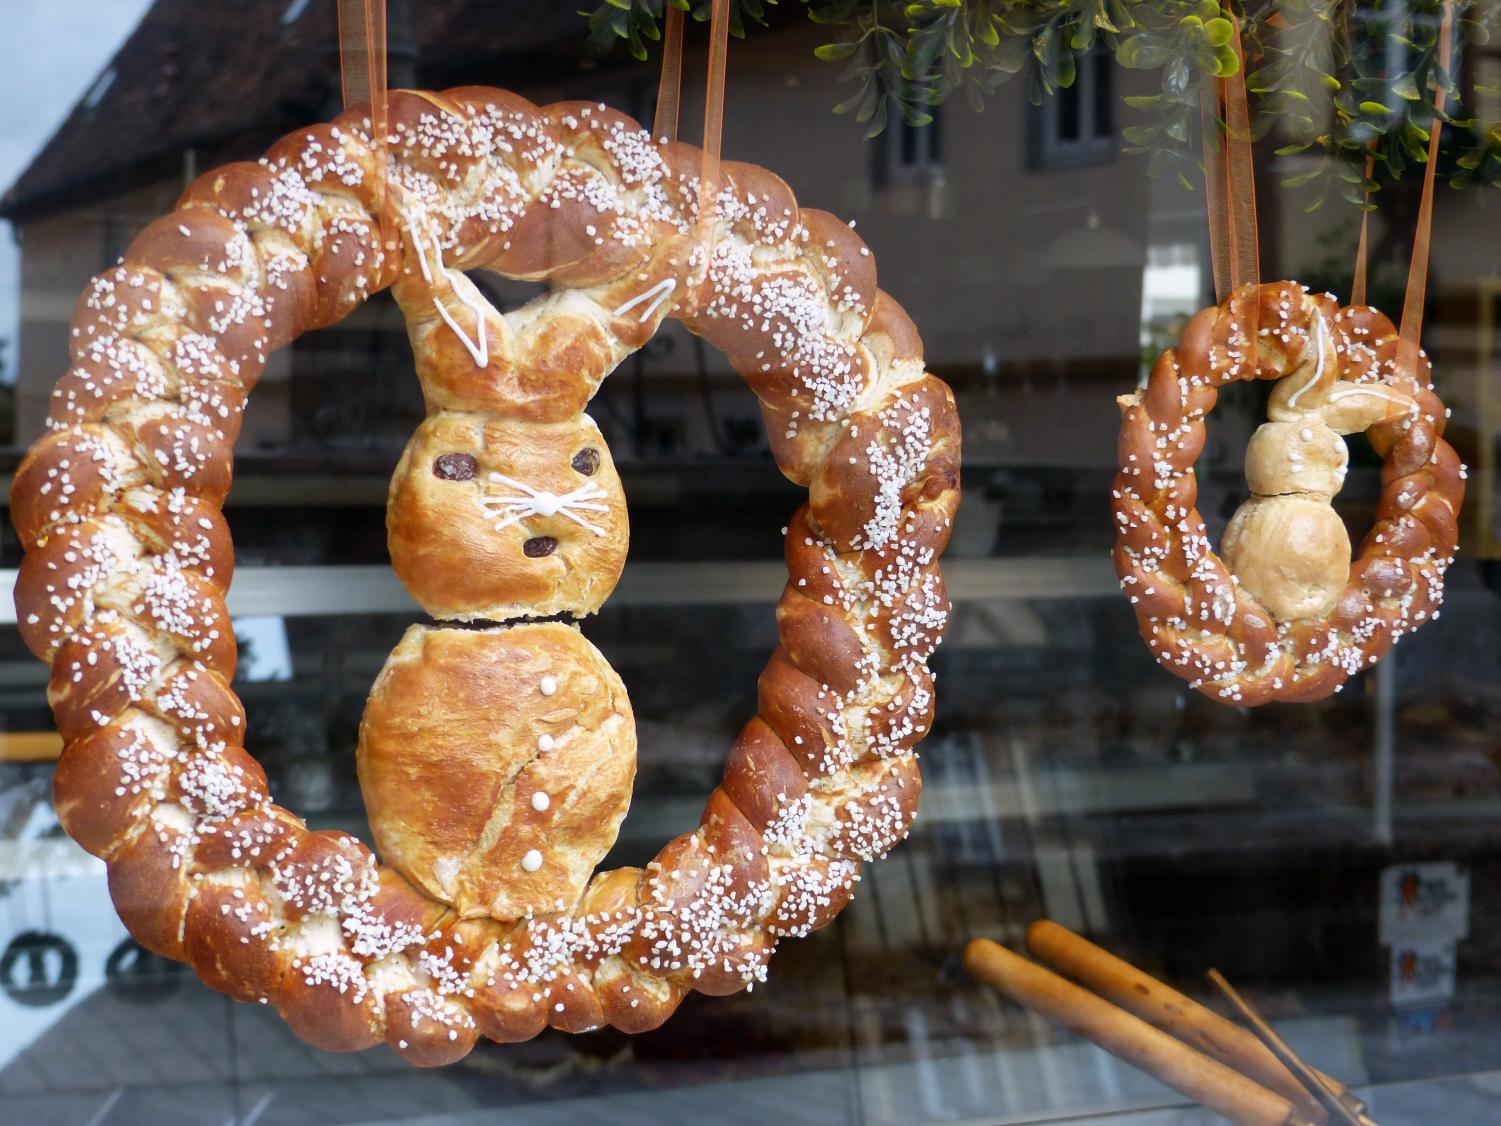 German towns are filled with decorative Easter breads known as